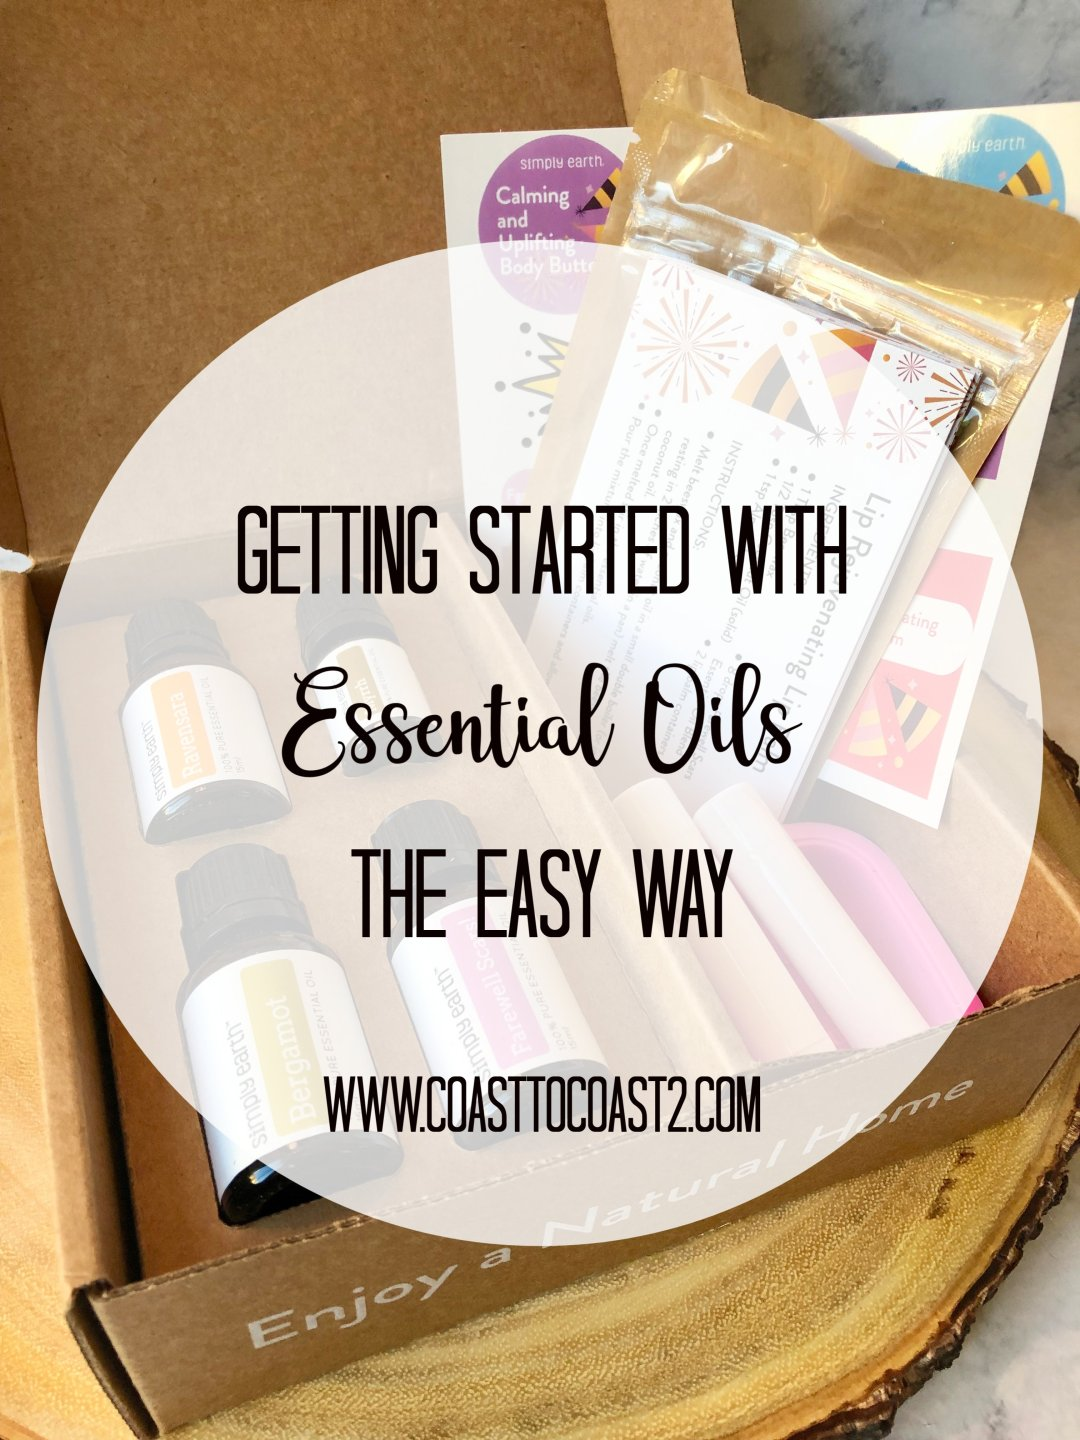 Getting started with essential oils the easy way